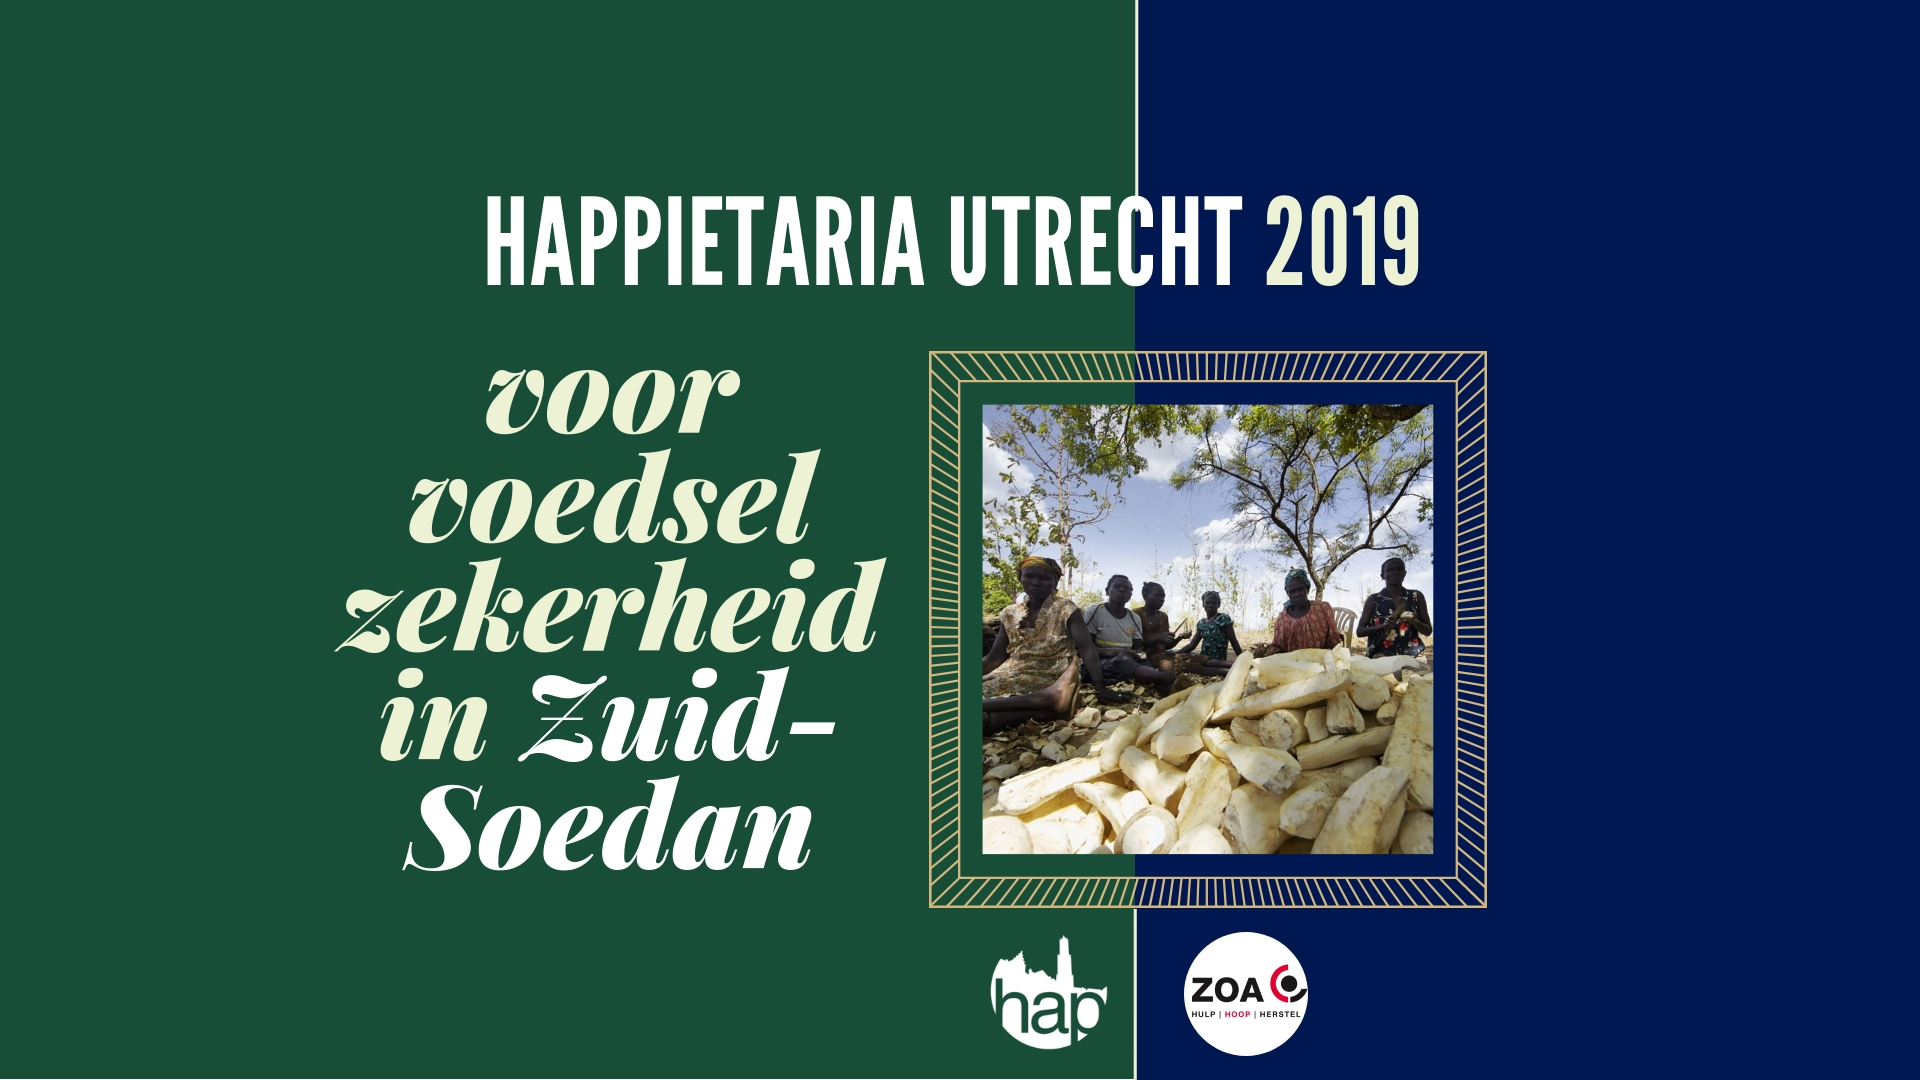 Happietaria Utrecht